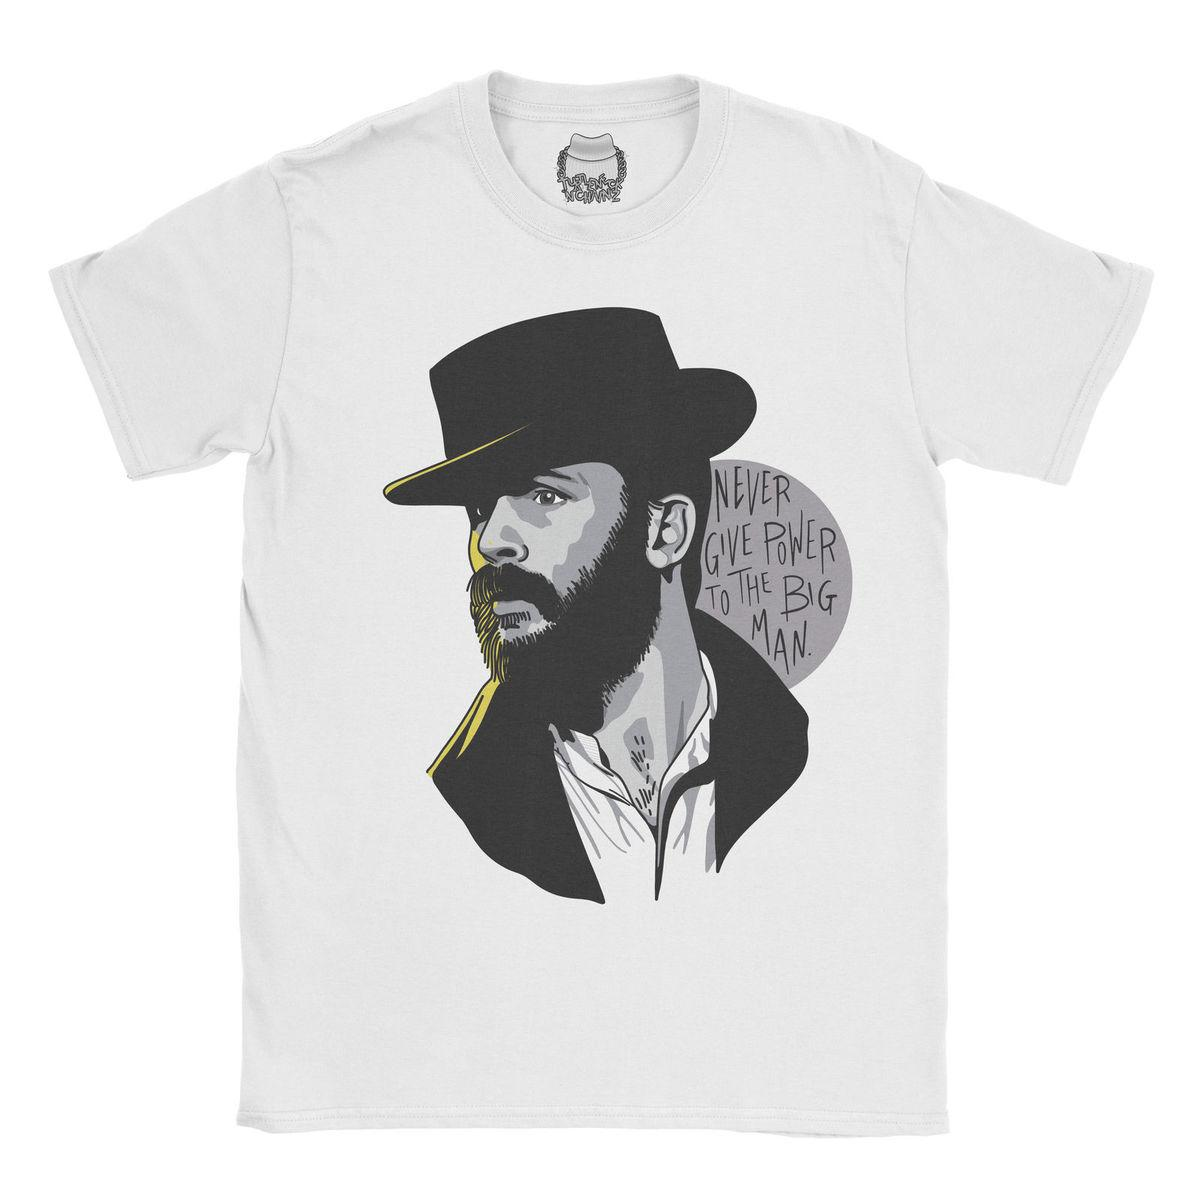 Compre Peaky Blinders Alfie Solomons Camiseta TEE Fan Tom Hardy Top Camiseta  Para Hombre UnisexNew T Shirts Funny Tops Tee New Unisex Tops Divertidas A  ... 6db426fa3c7f3